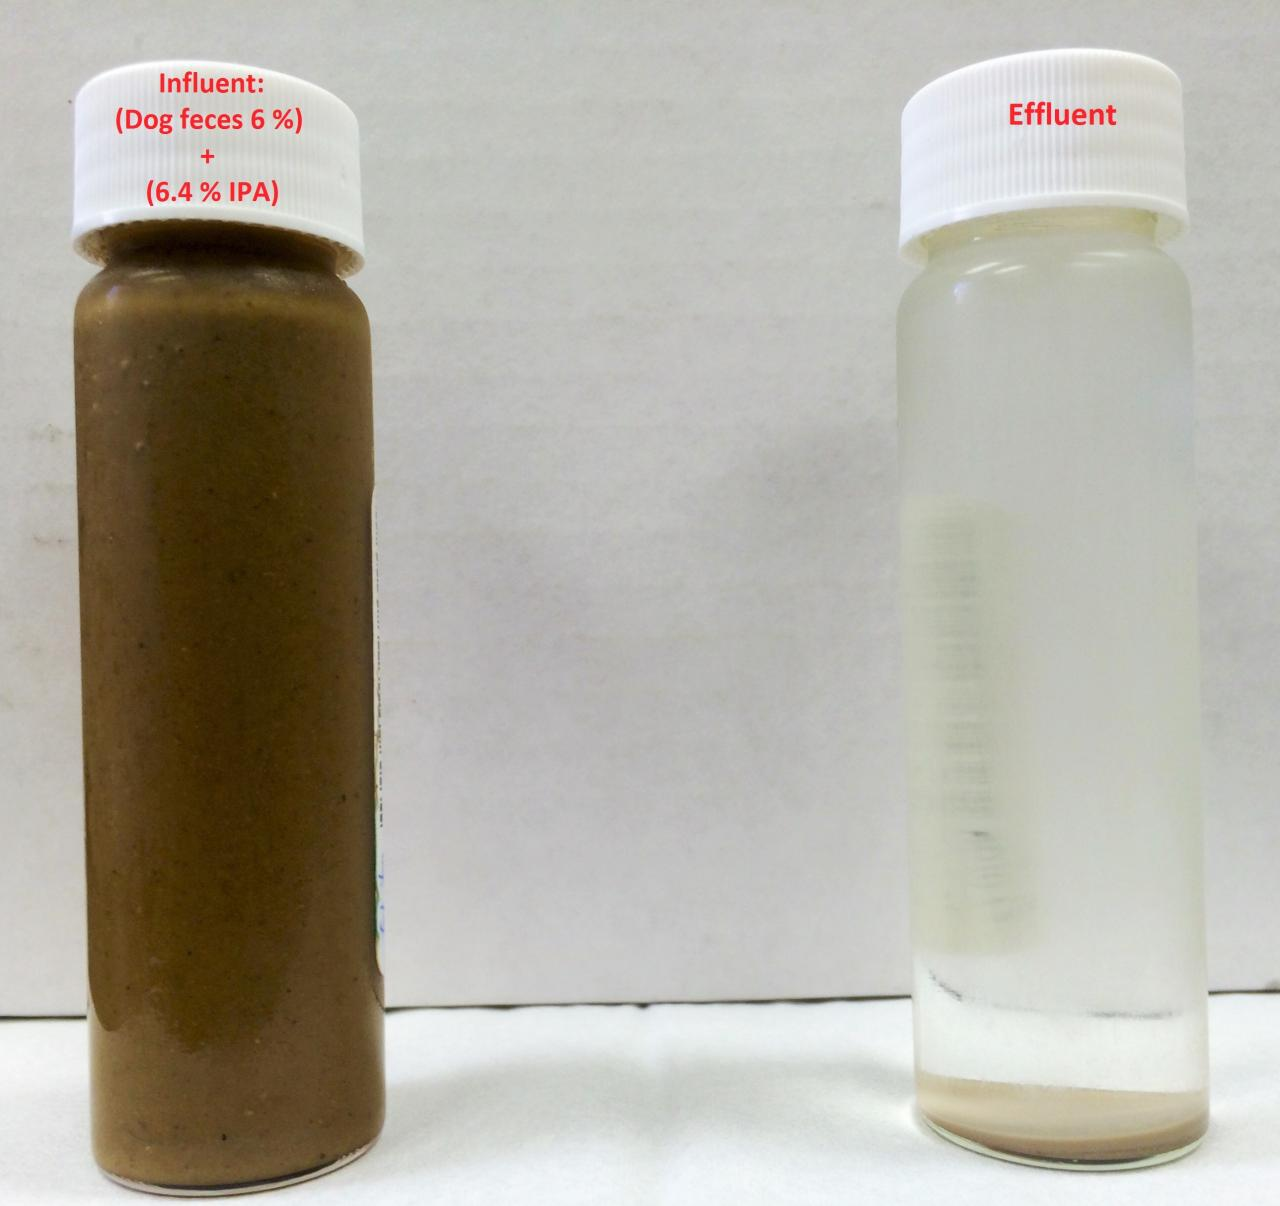 Influent (left) and effluent (right) from our supercritical water oxidation prototype (June 2016)